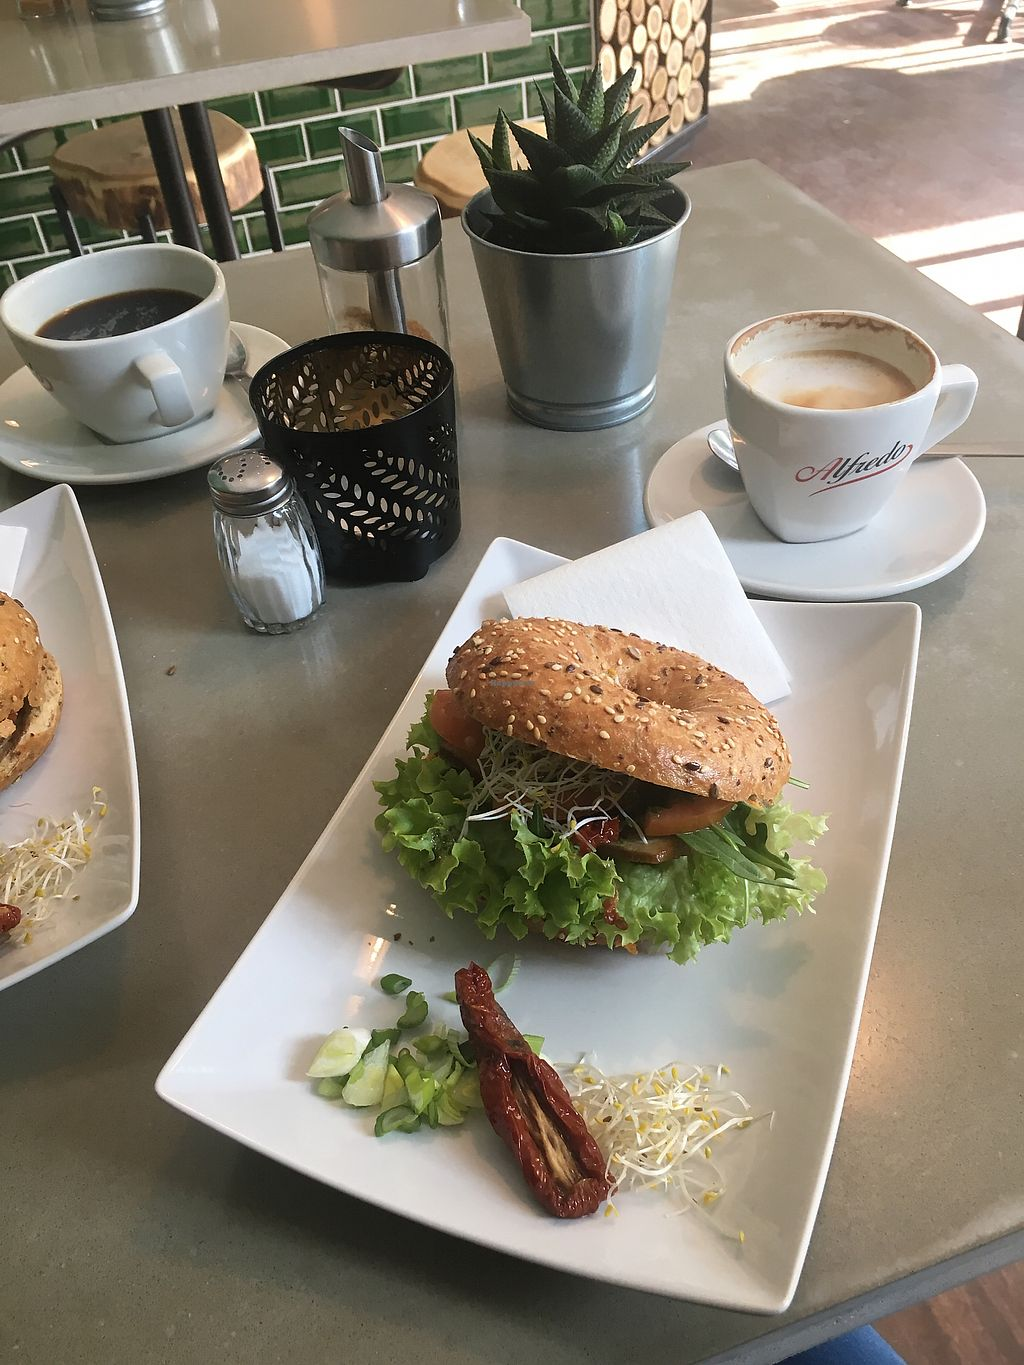 """Photo of Grüngut  by <a href=""""/members/profile/SydGo84"""">SydGo84</a> <br/>Freshly made breakfast - thx, Peter! <br/> April 5, 2018  - <a href='/contact/abuse/image/109728/381026'>Report</a>"""